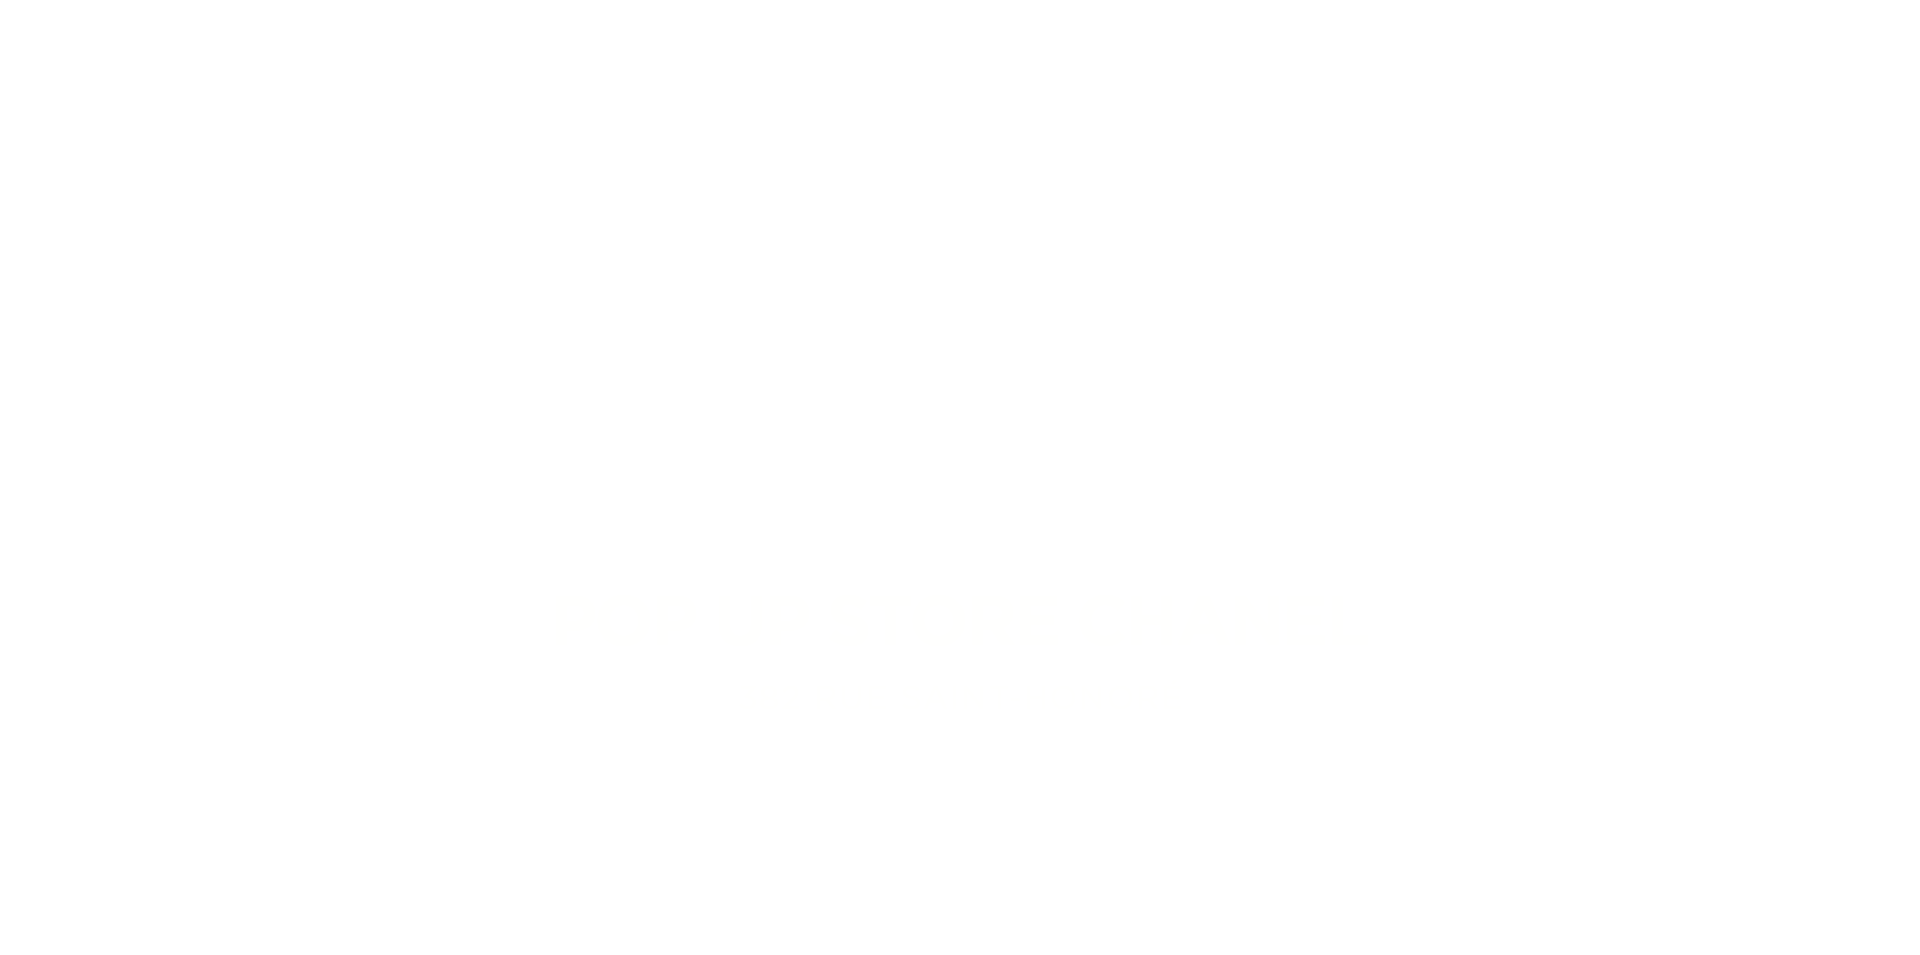 Pop Up Store Chanel